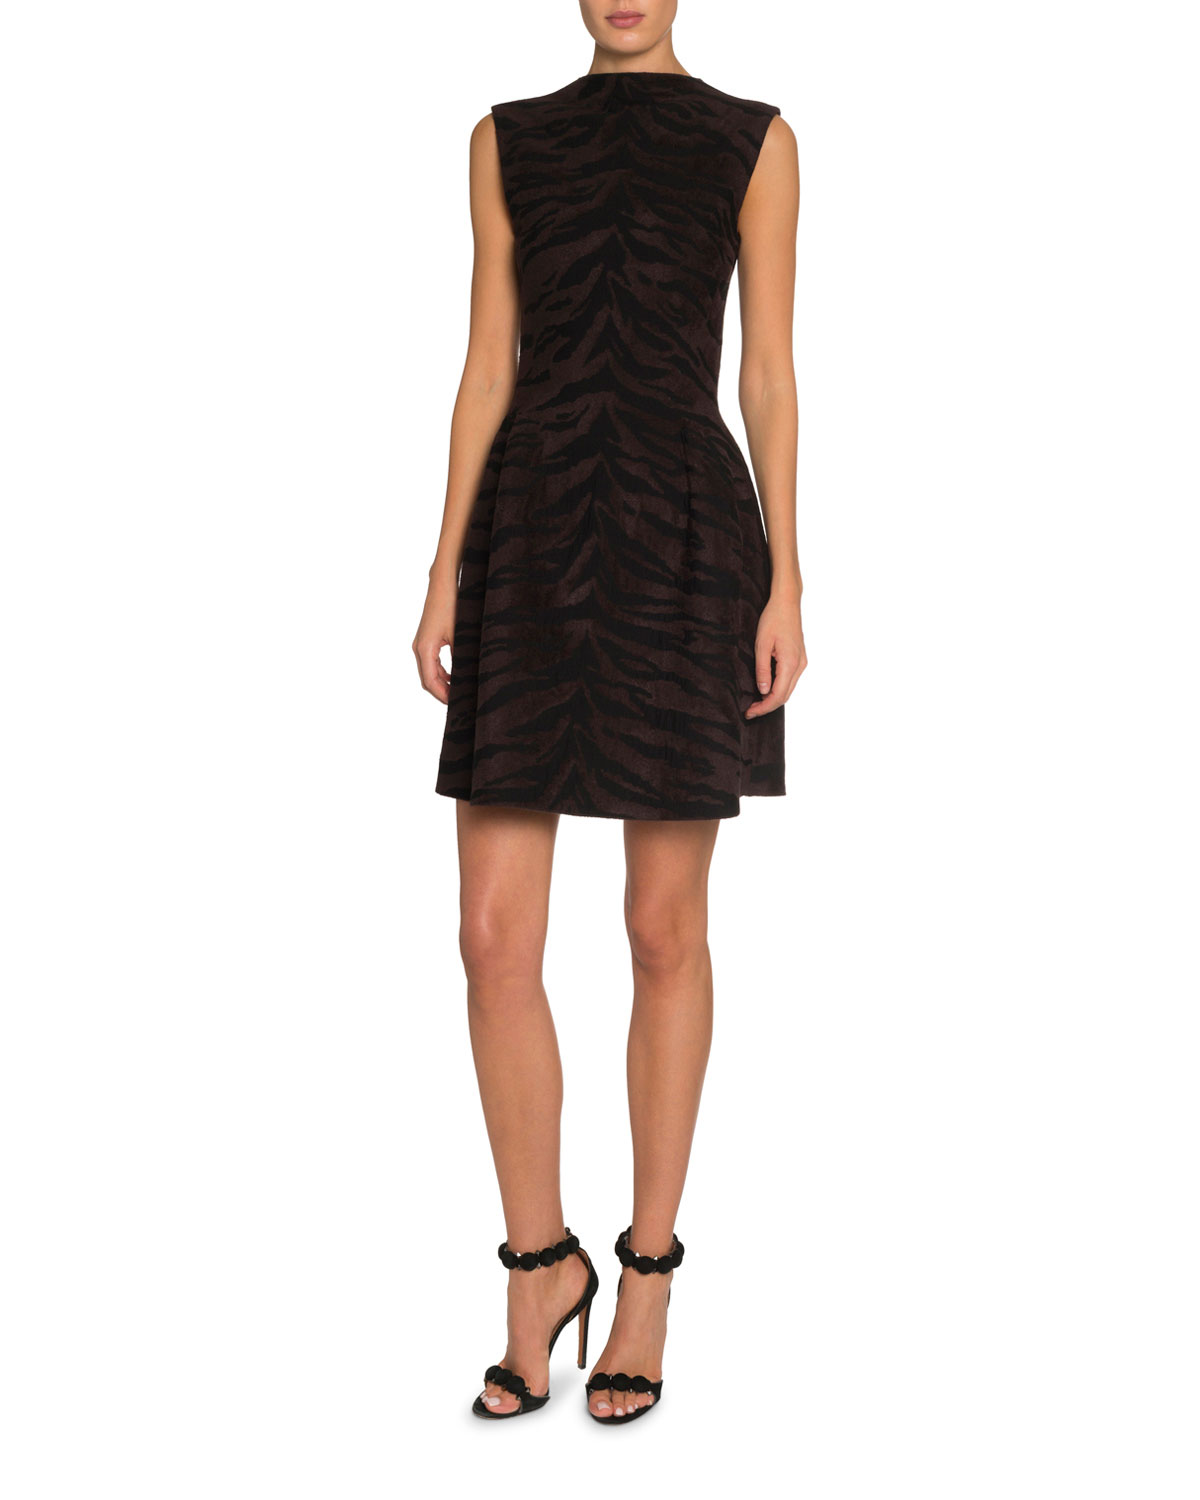 ALAIA Tiger-Striped Black Velvet Mini Dress